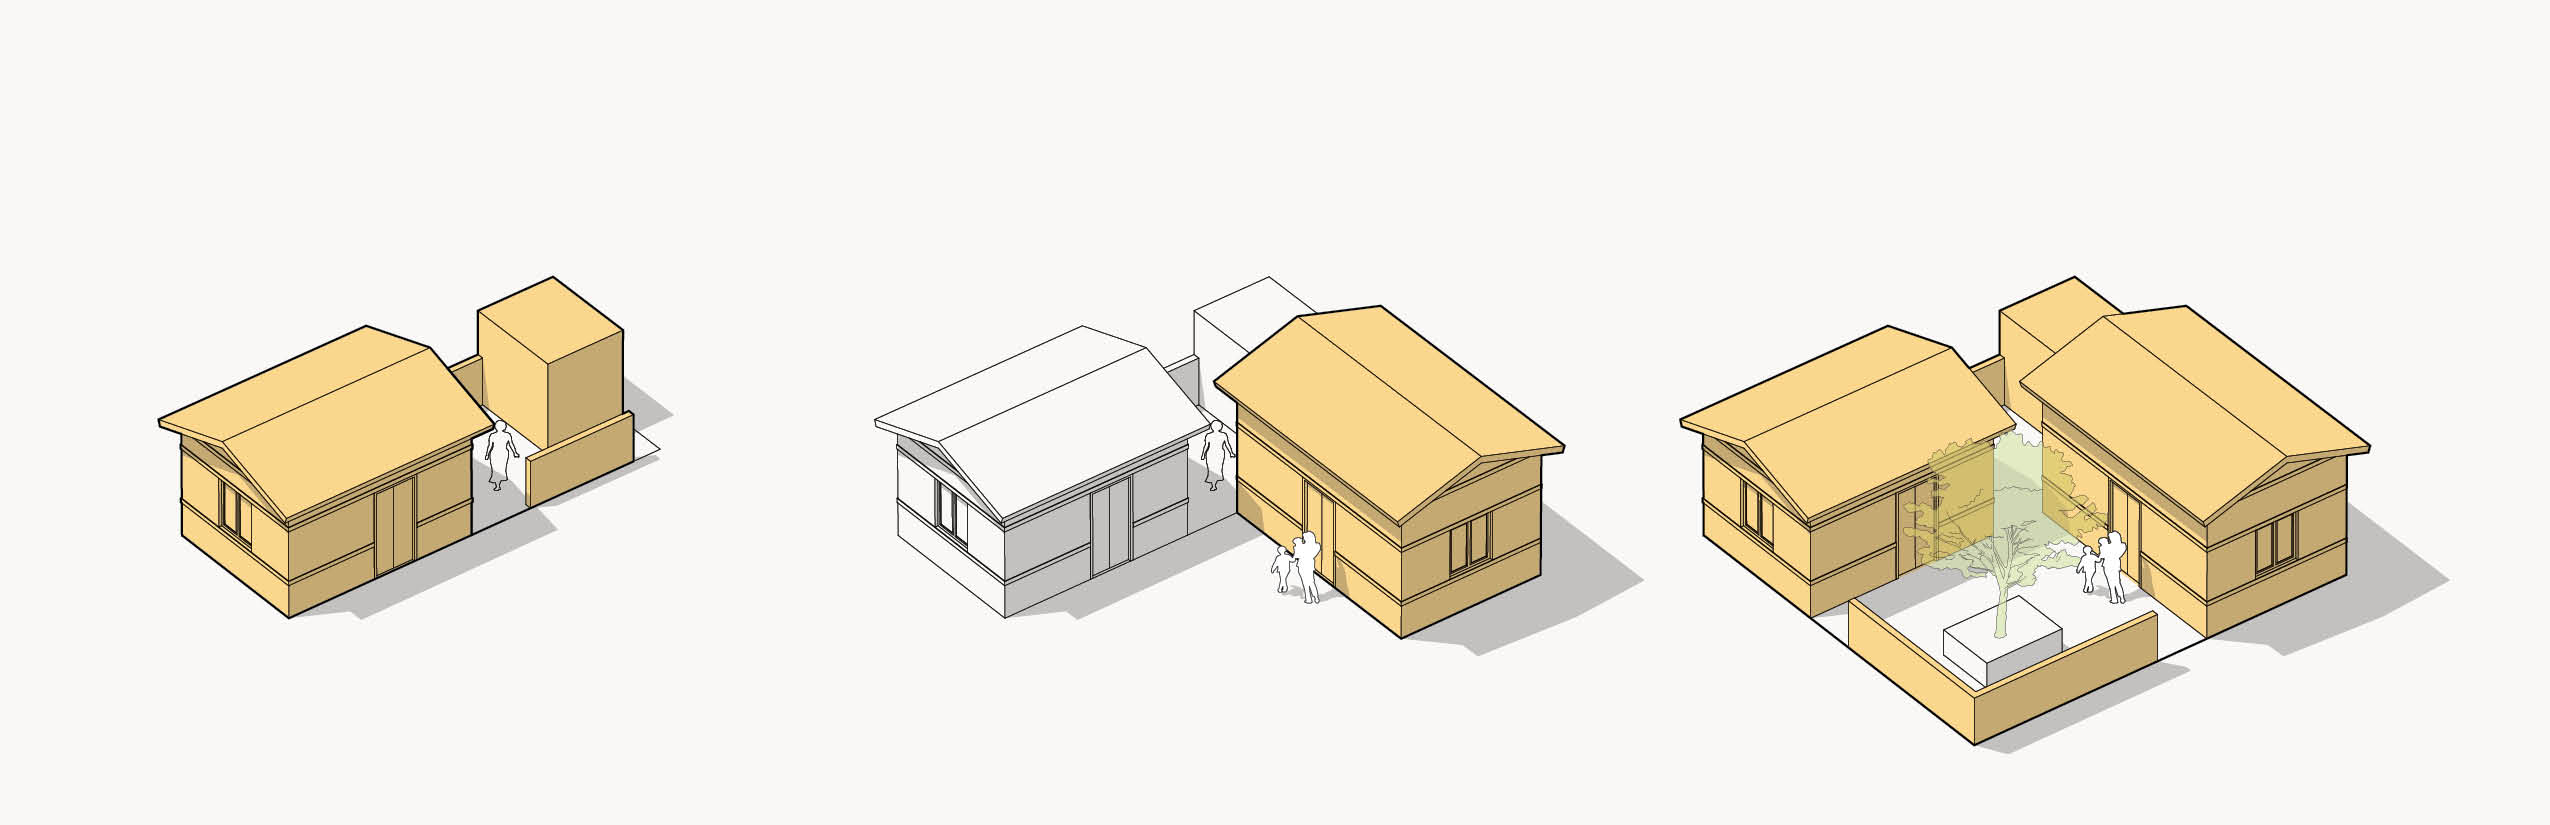 Build Up Nepal's model houses; the Nepal Initiative will support the two-room house (first house, far left)